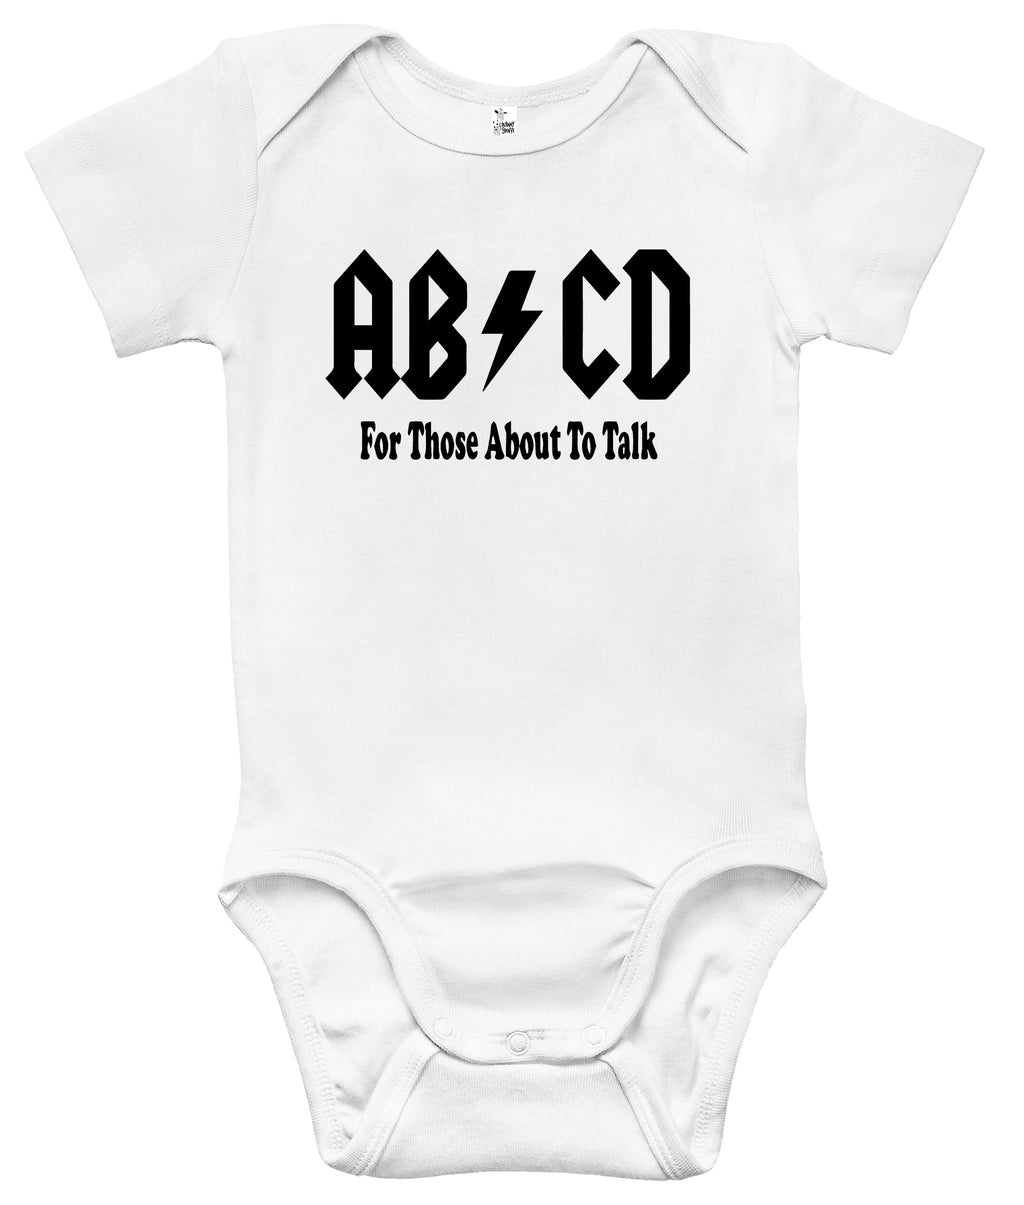 Baby Bodysuit - AB/CD - For Those About to Talk